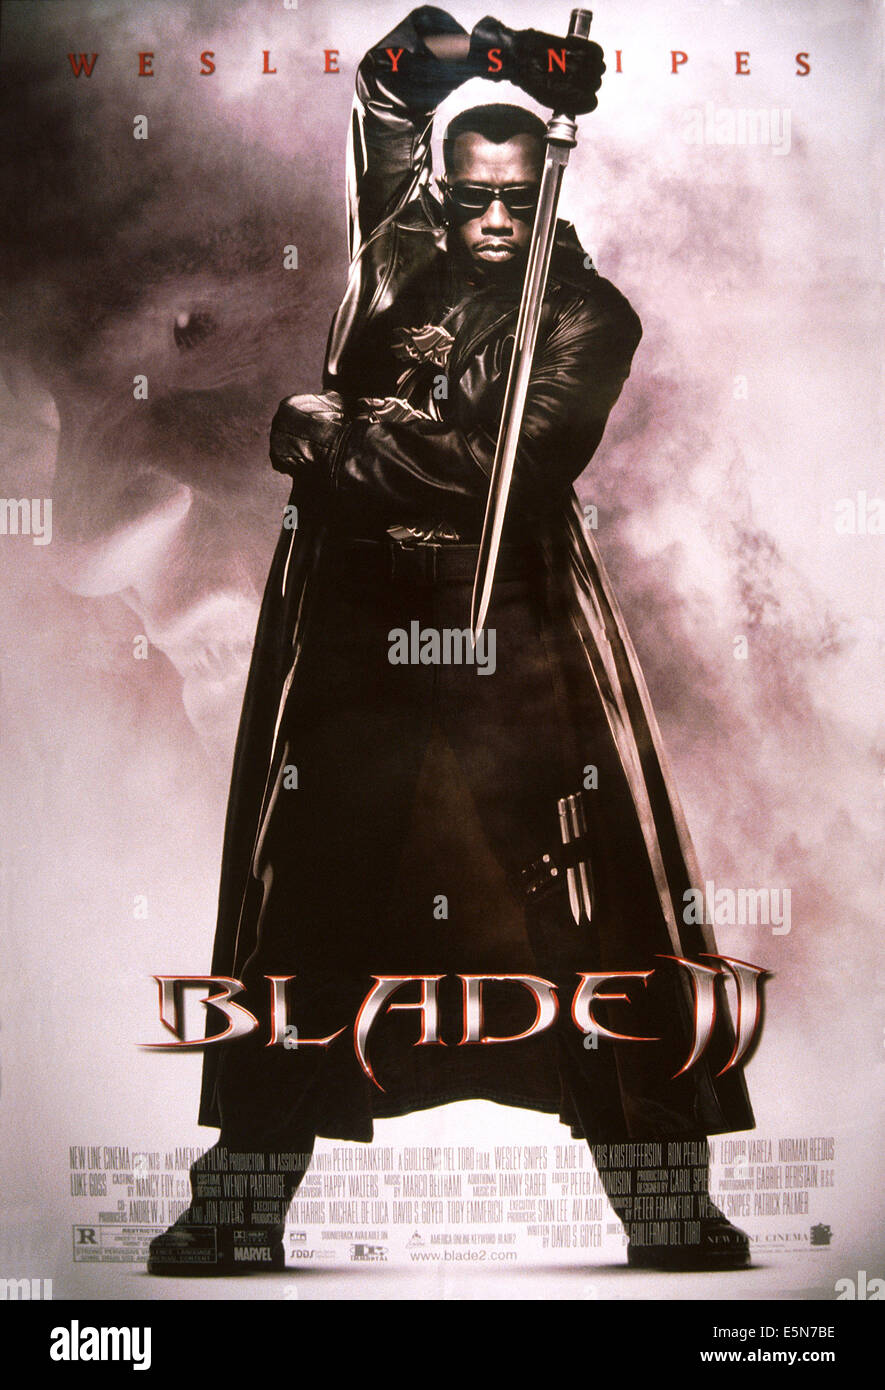 Wesley Snipes Blade High Resolution Stock Photography And Images Alamy